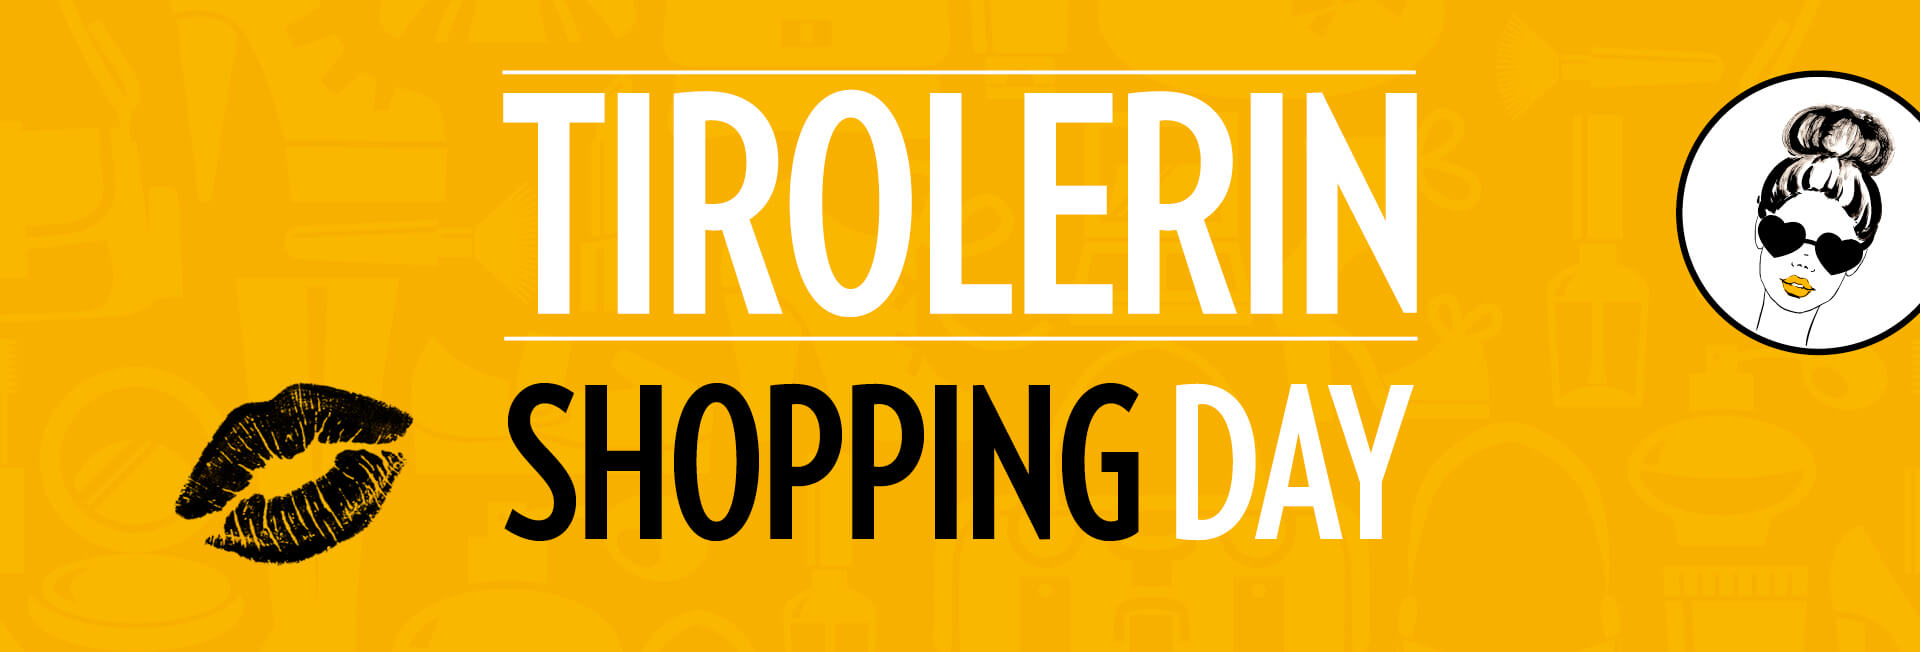 Tirolerin Shopping Day im Kaufhaus Tyrol